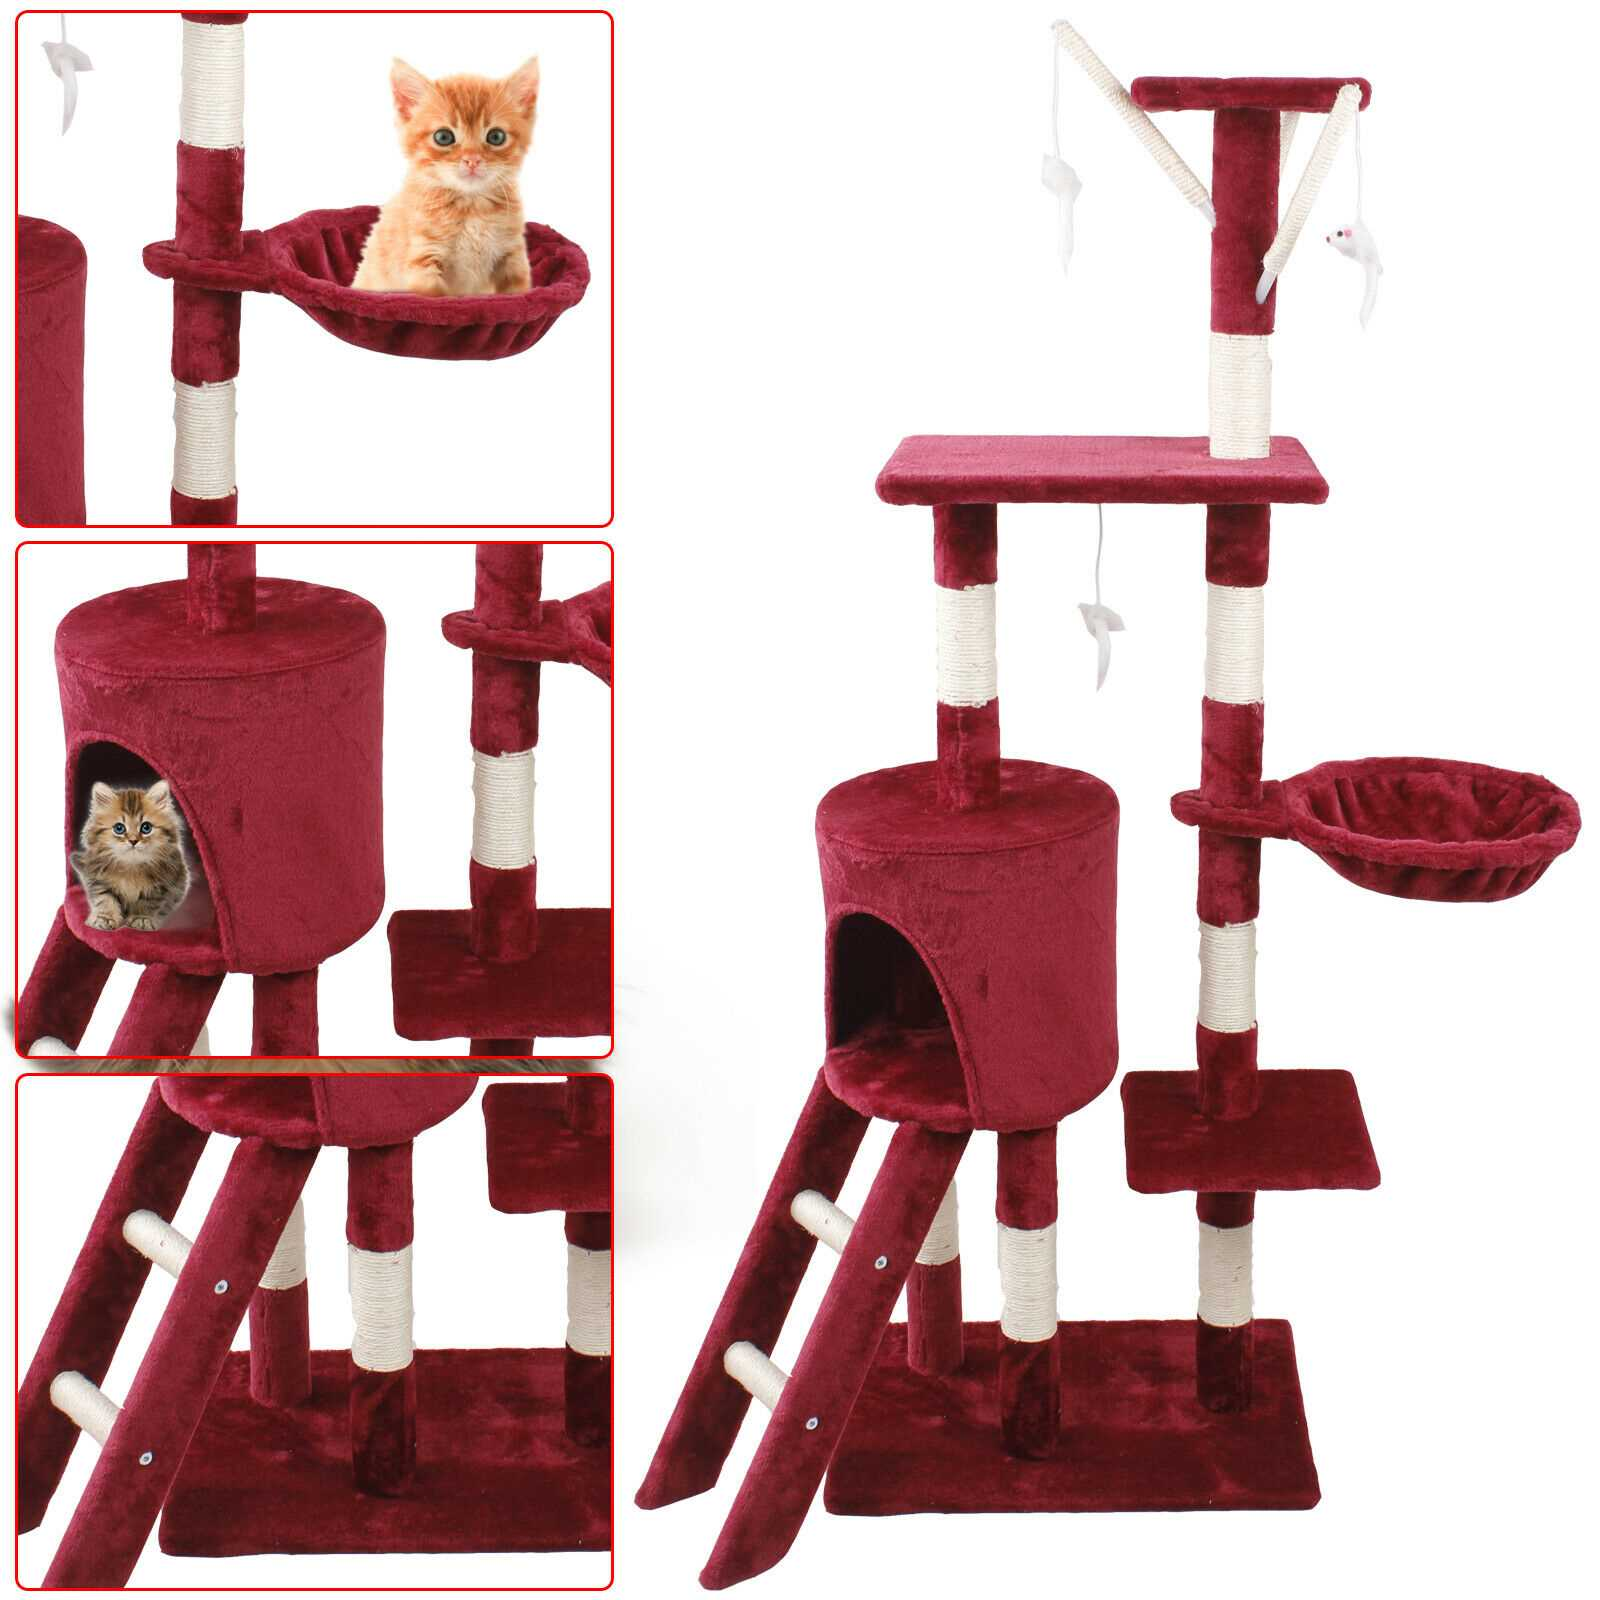 Bordeaux 140cm Cat Kitten Climbing Tree Scratching Post Activity Centre House Play Toys